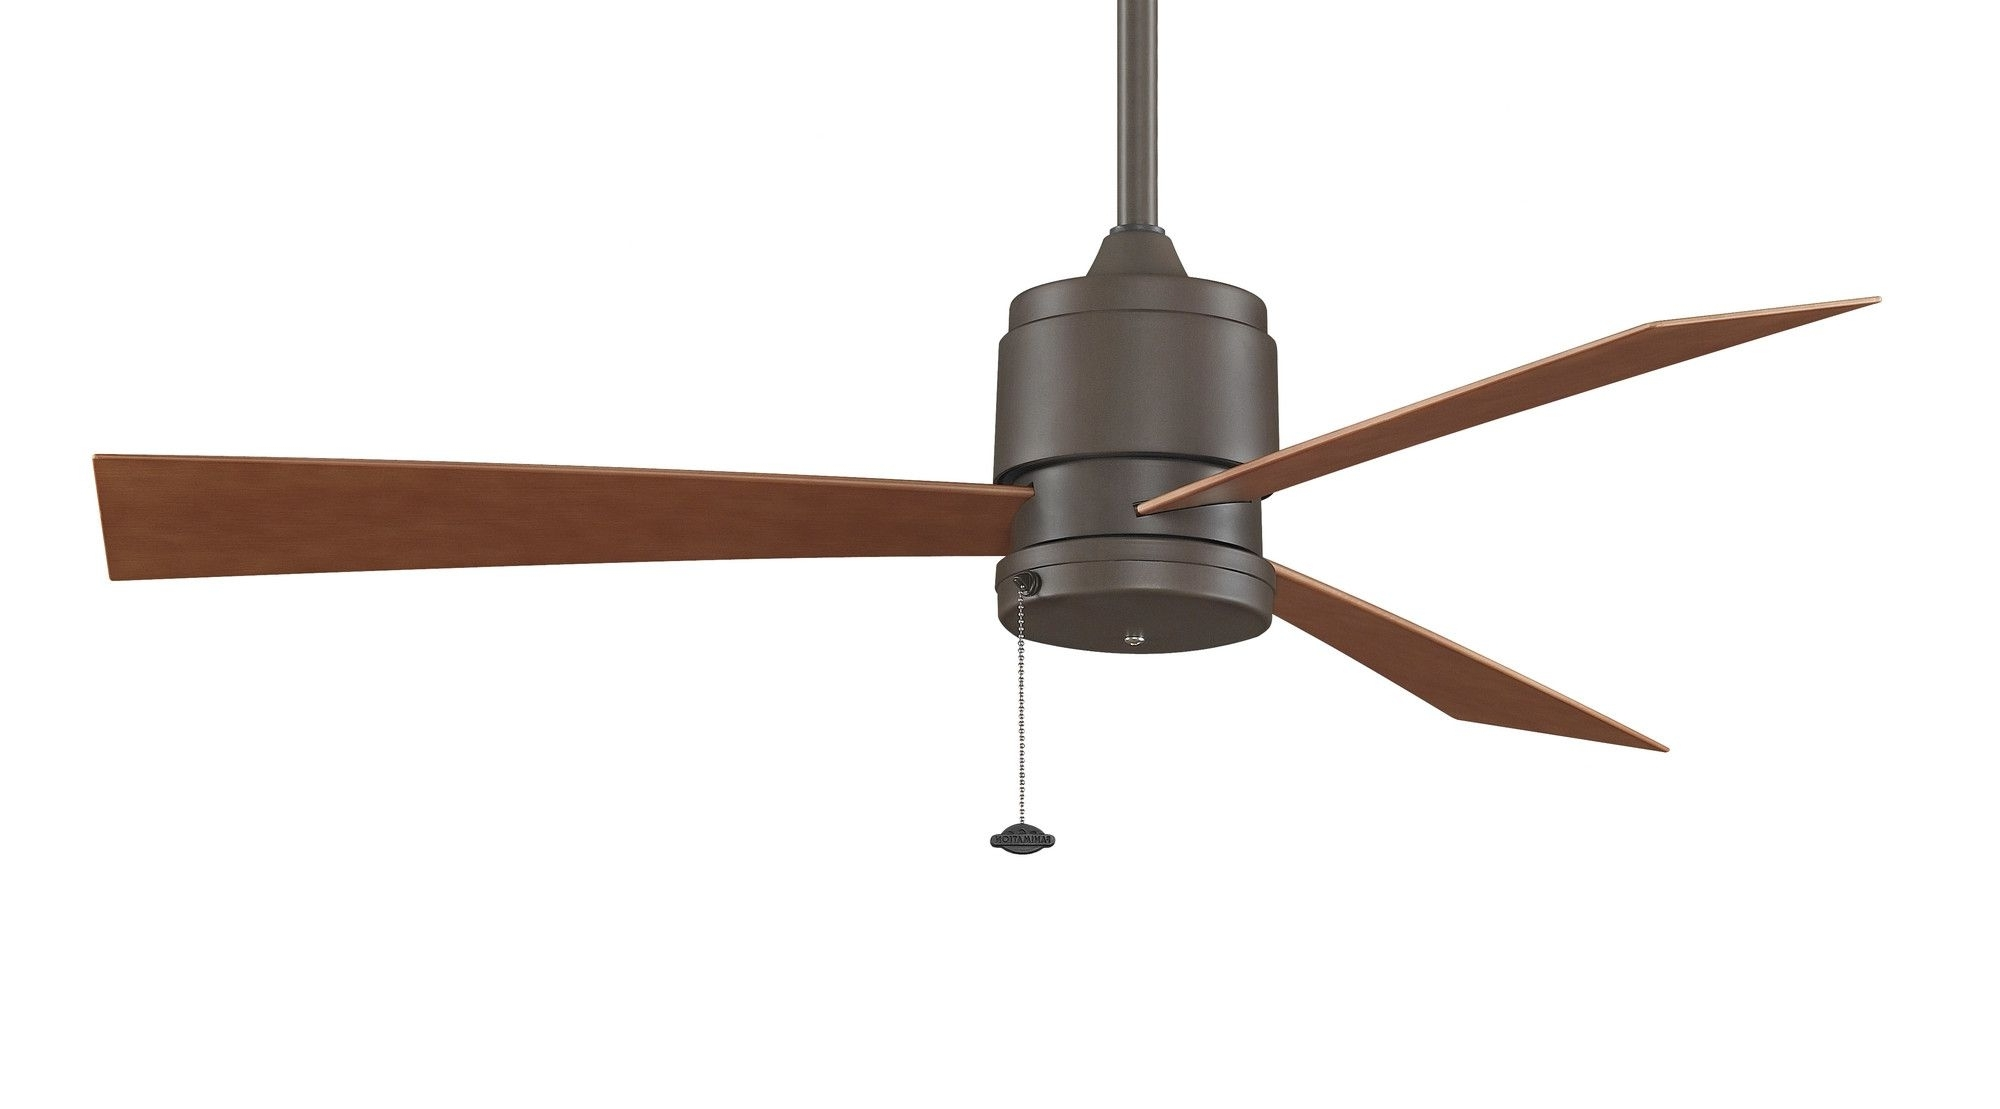 Blade, Ceiling Fans And With Regard To Hurricane Outdoor Ceiling Fans (View 3 of 20)